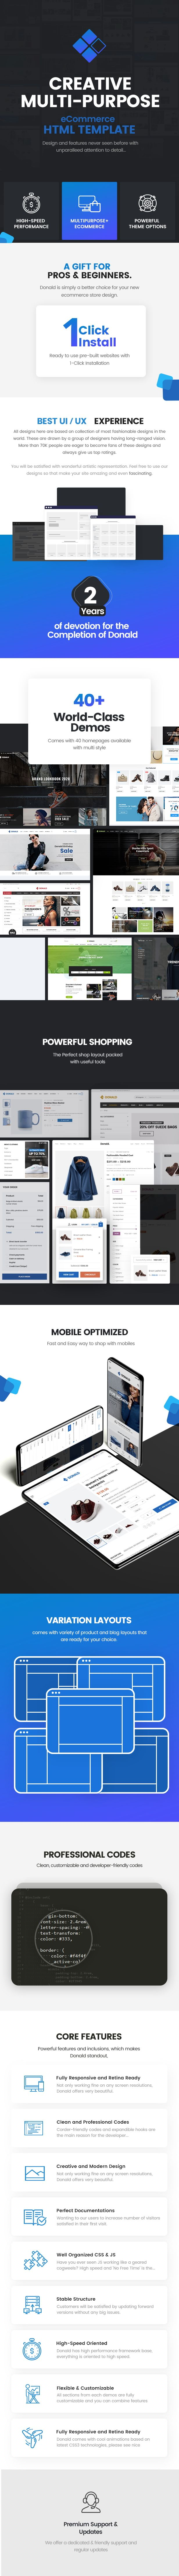 Donald - eCommerce HTML Template - 1